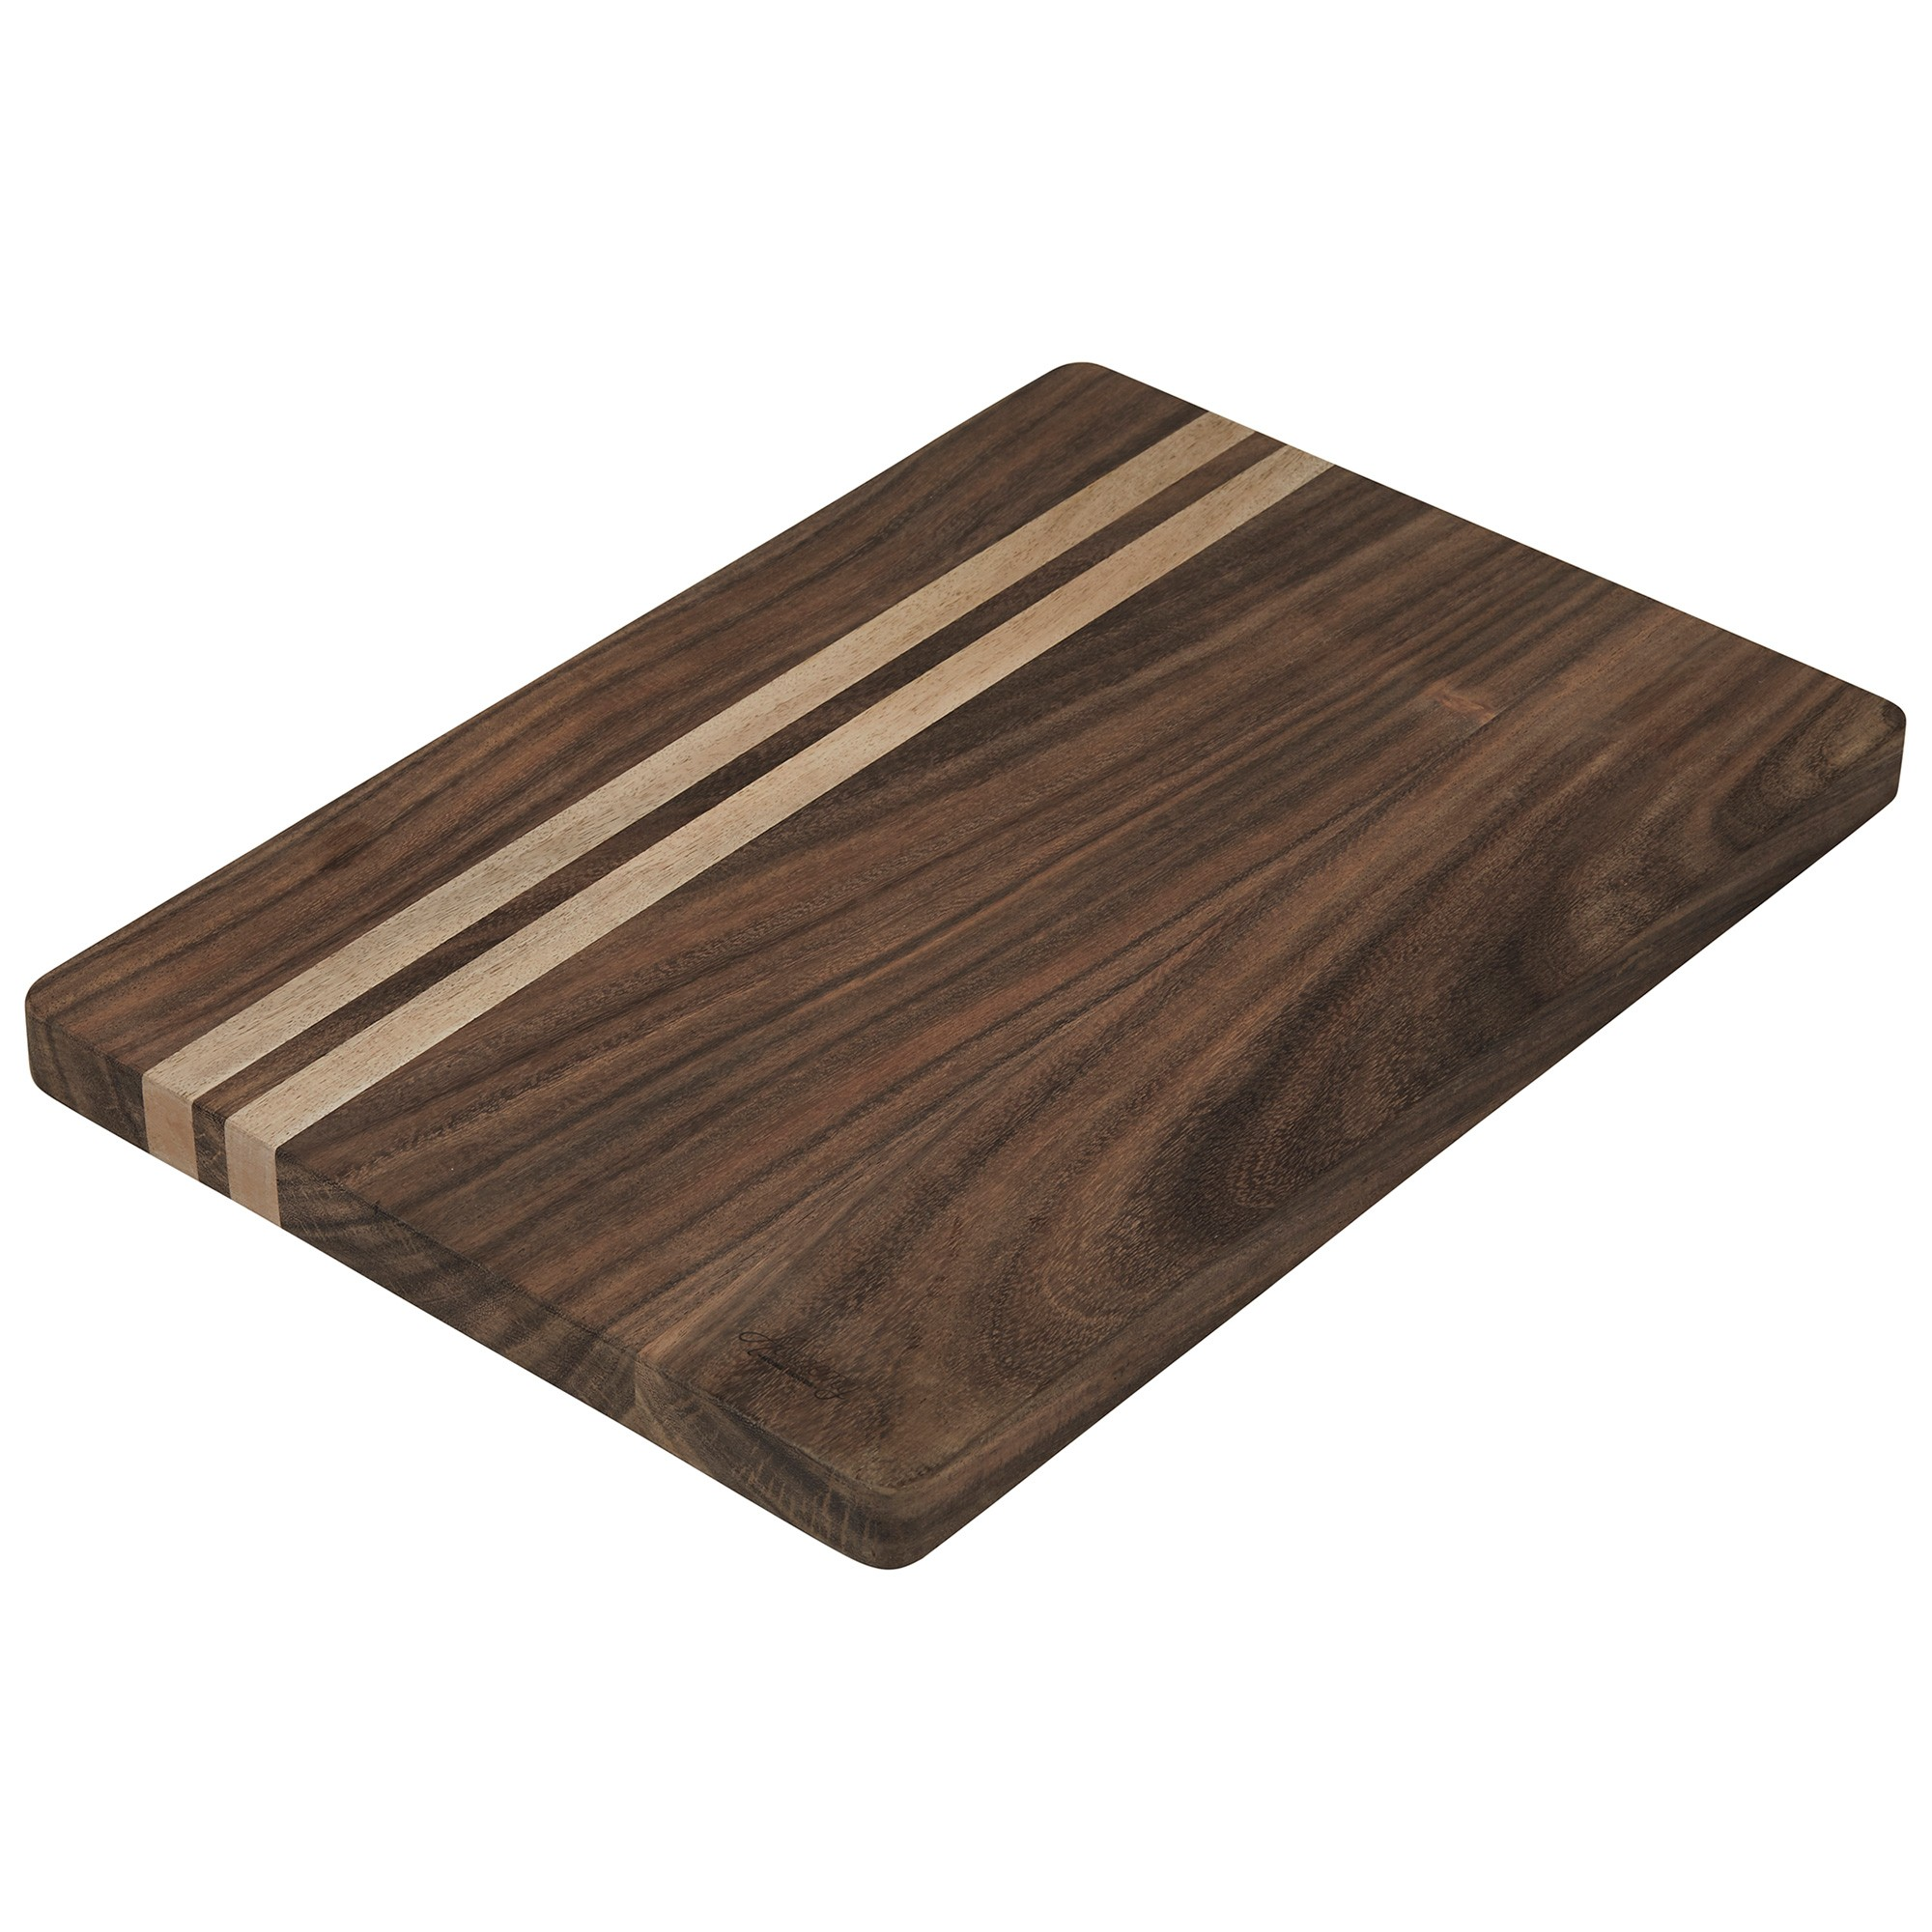 Faulkner Timber Wood Butchers Board, 50x25cm, Walnut